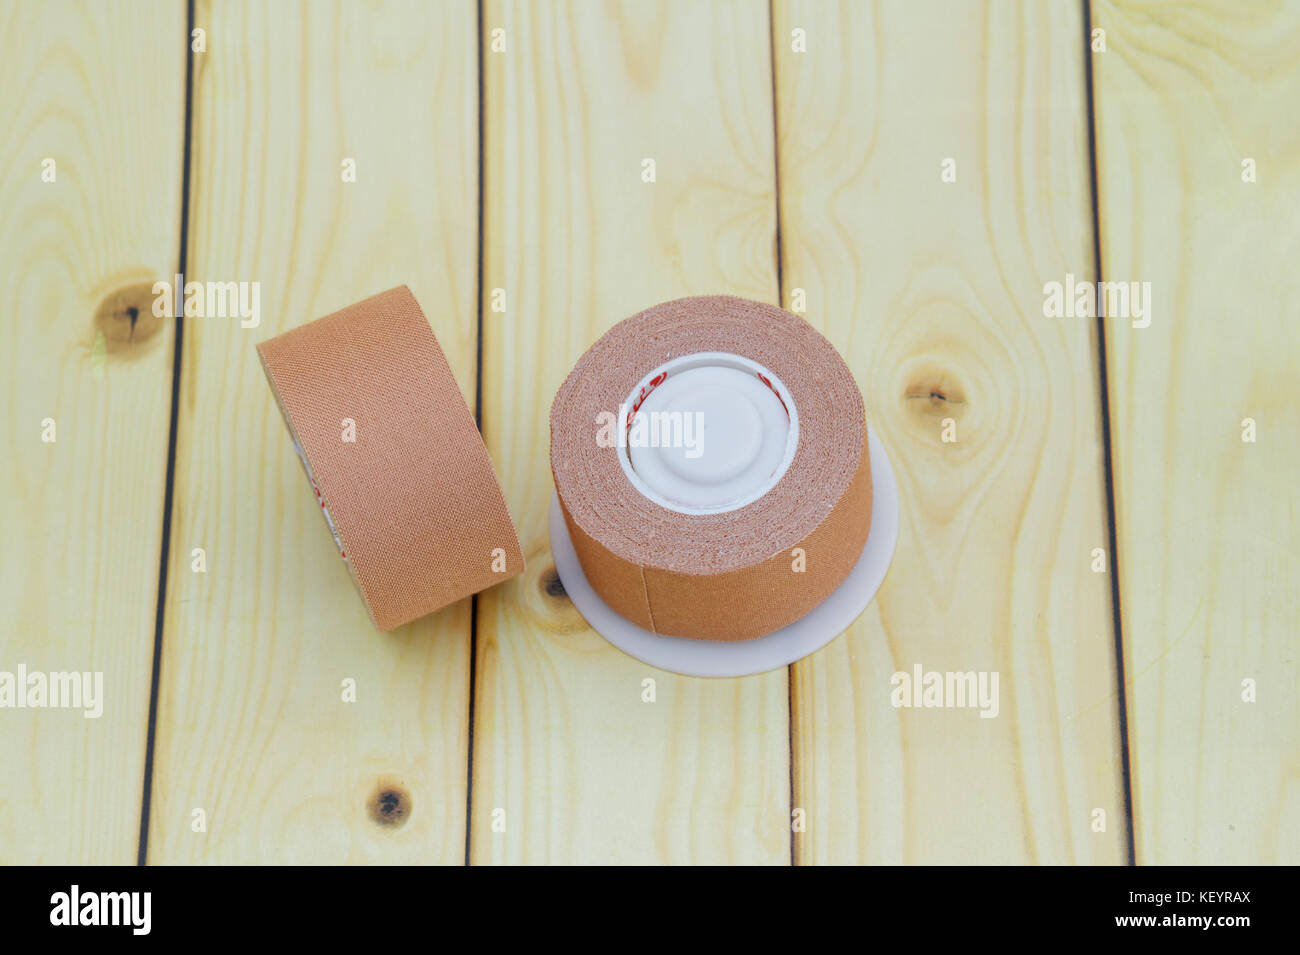 Surgical or medical tape on wooden background - Stock Image